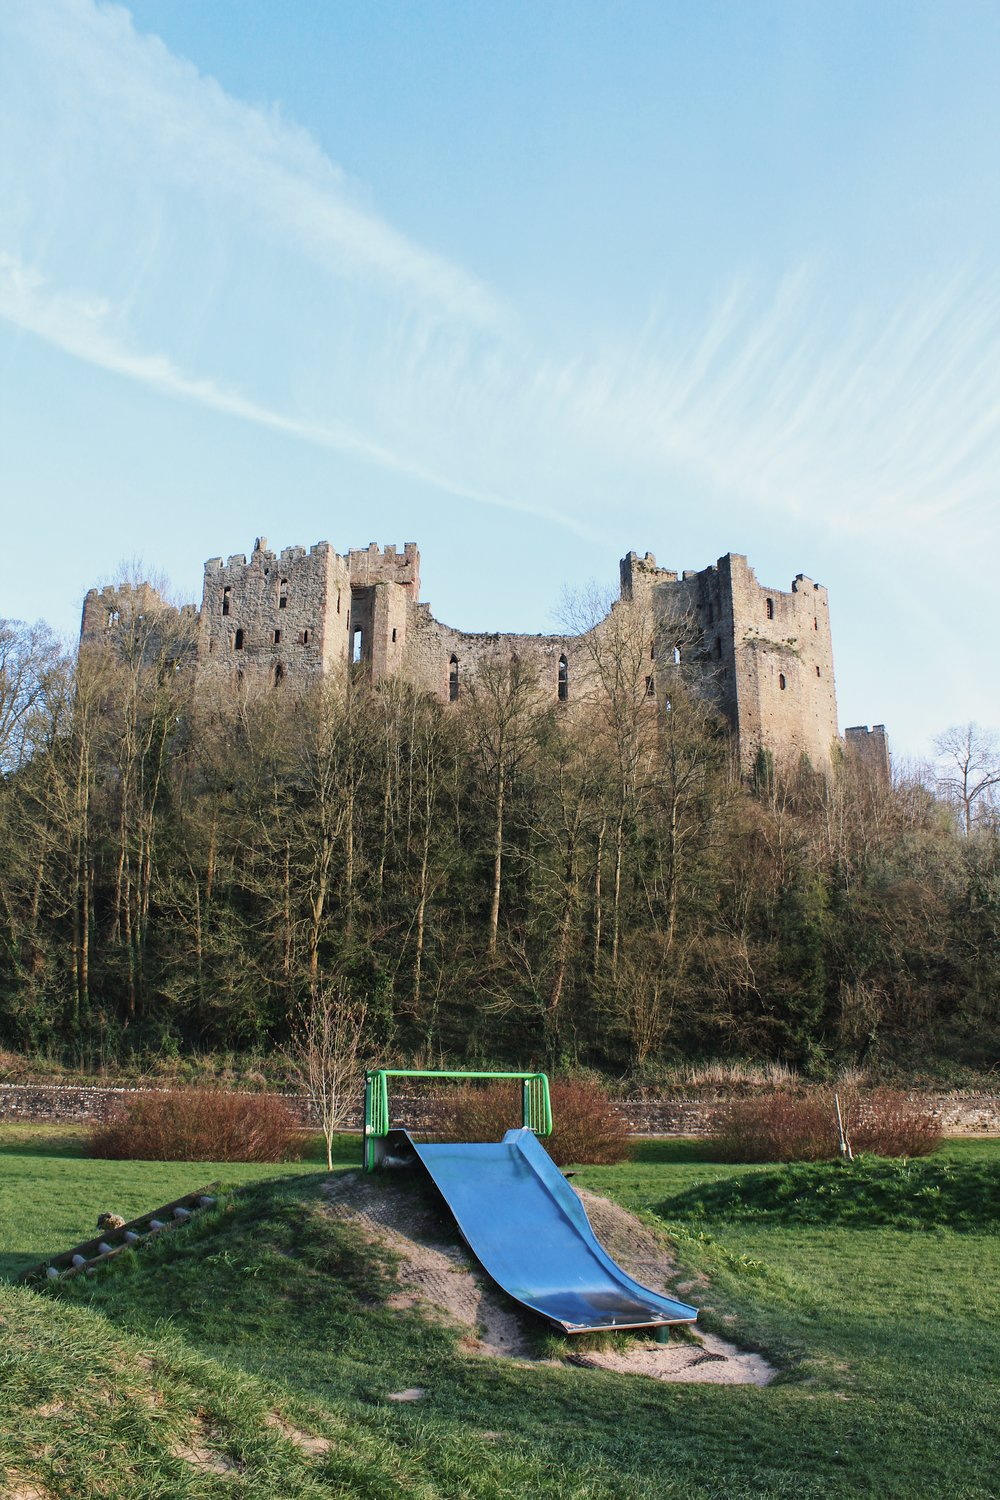 This is surely one of the prettiest parks in England. How many others have a castle in the background?